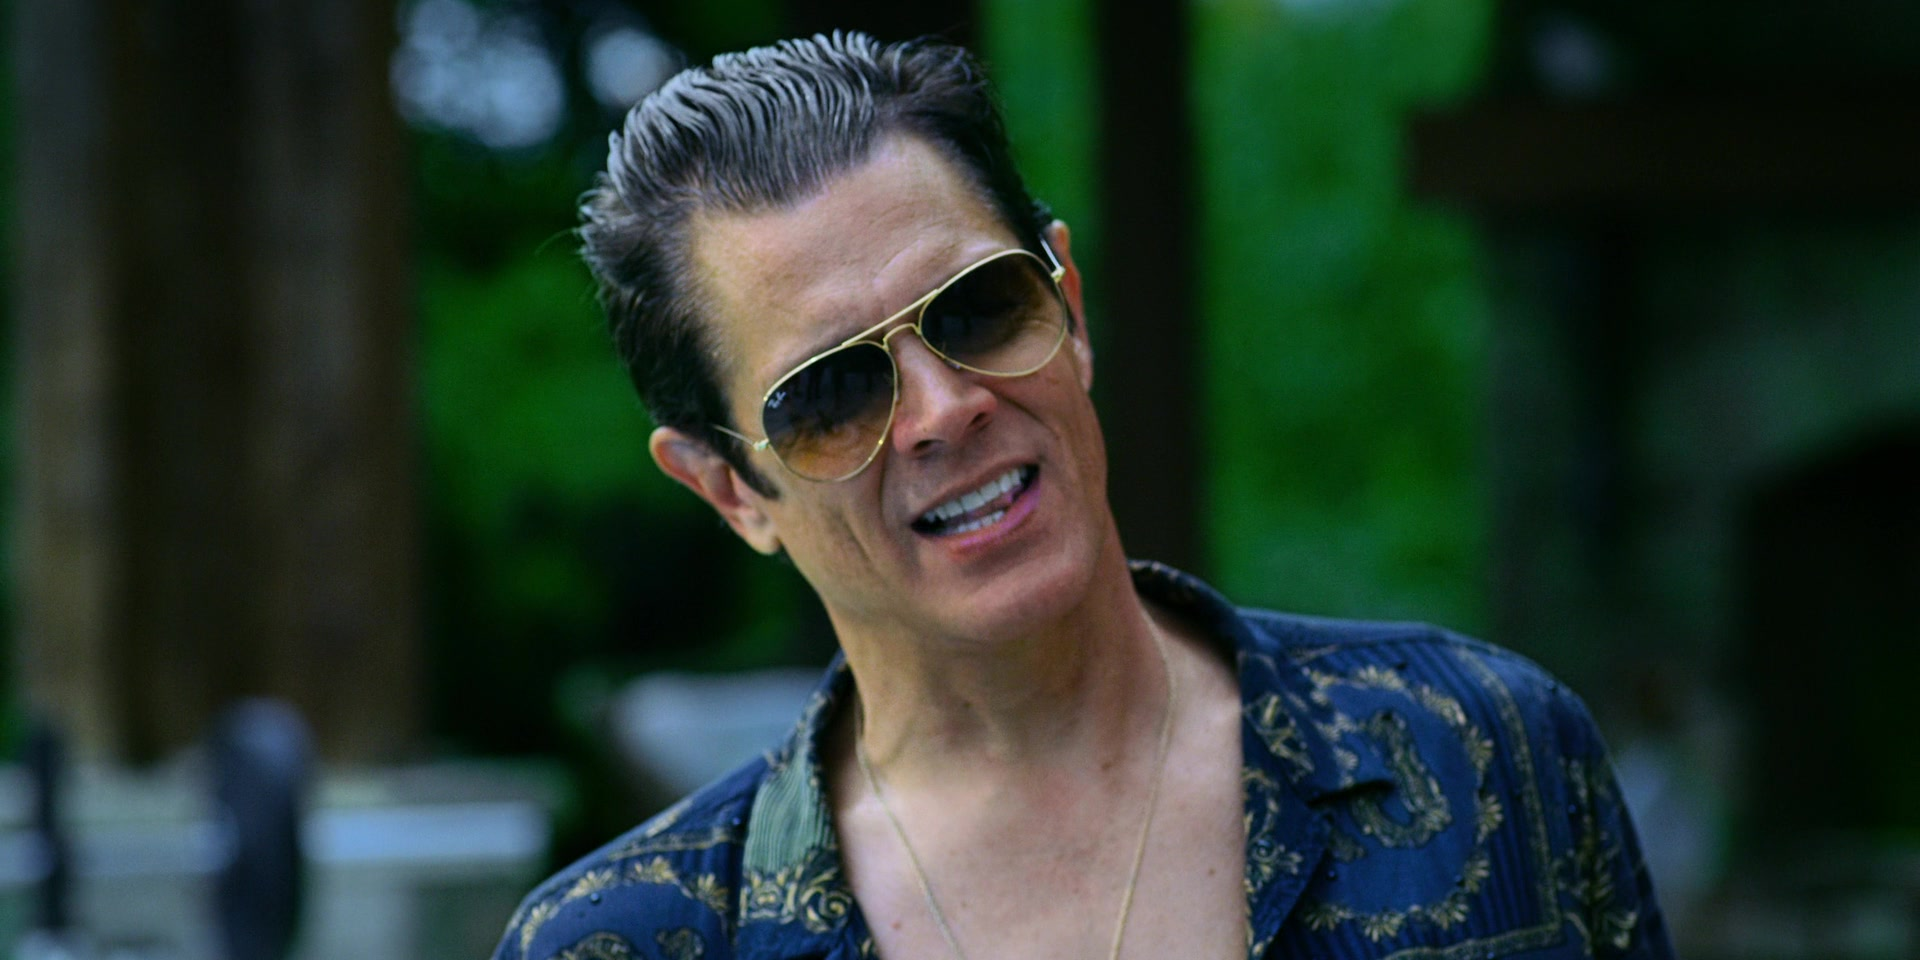 Ray Ban Men S Sunglasses Worn By Johnny Knoxville In Polar